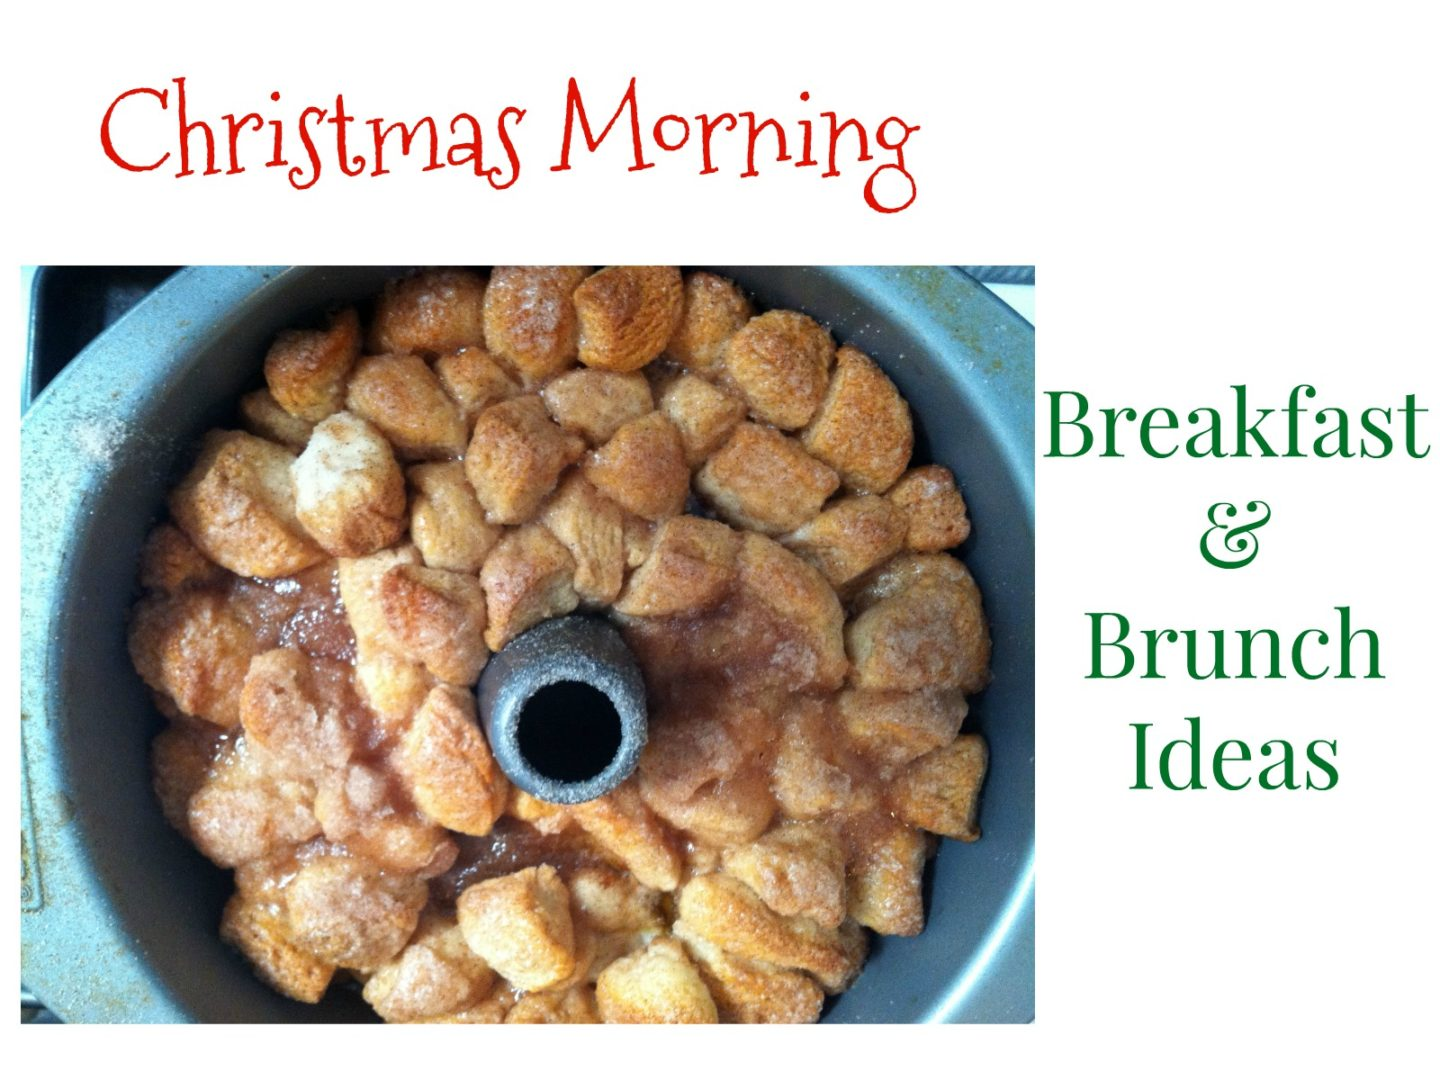 Christmas Morning Breakfast and Brunch Ideas | AlwaysMovingMommy.com | You should spend Christmas morning with your loved ones, not slaving over the stove.  Check out these quick and easy breakfast and brunch ideas.